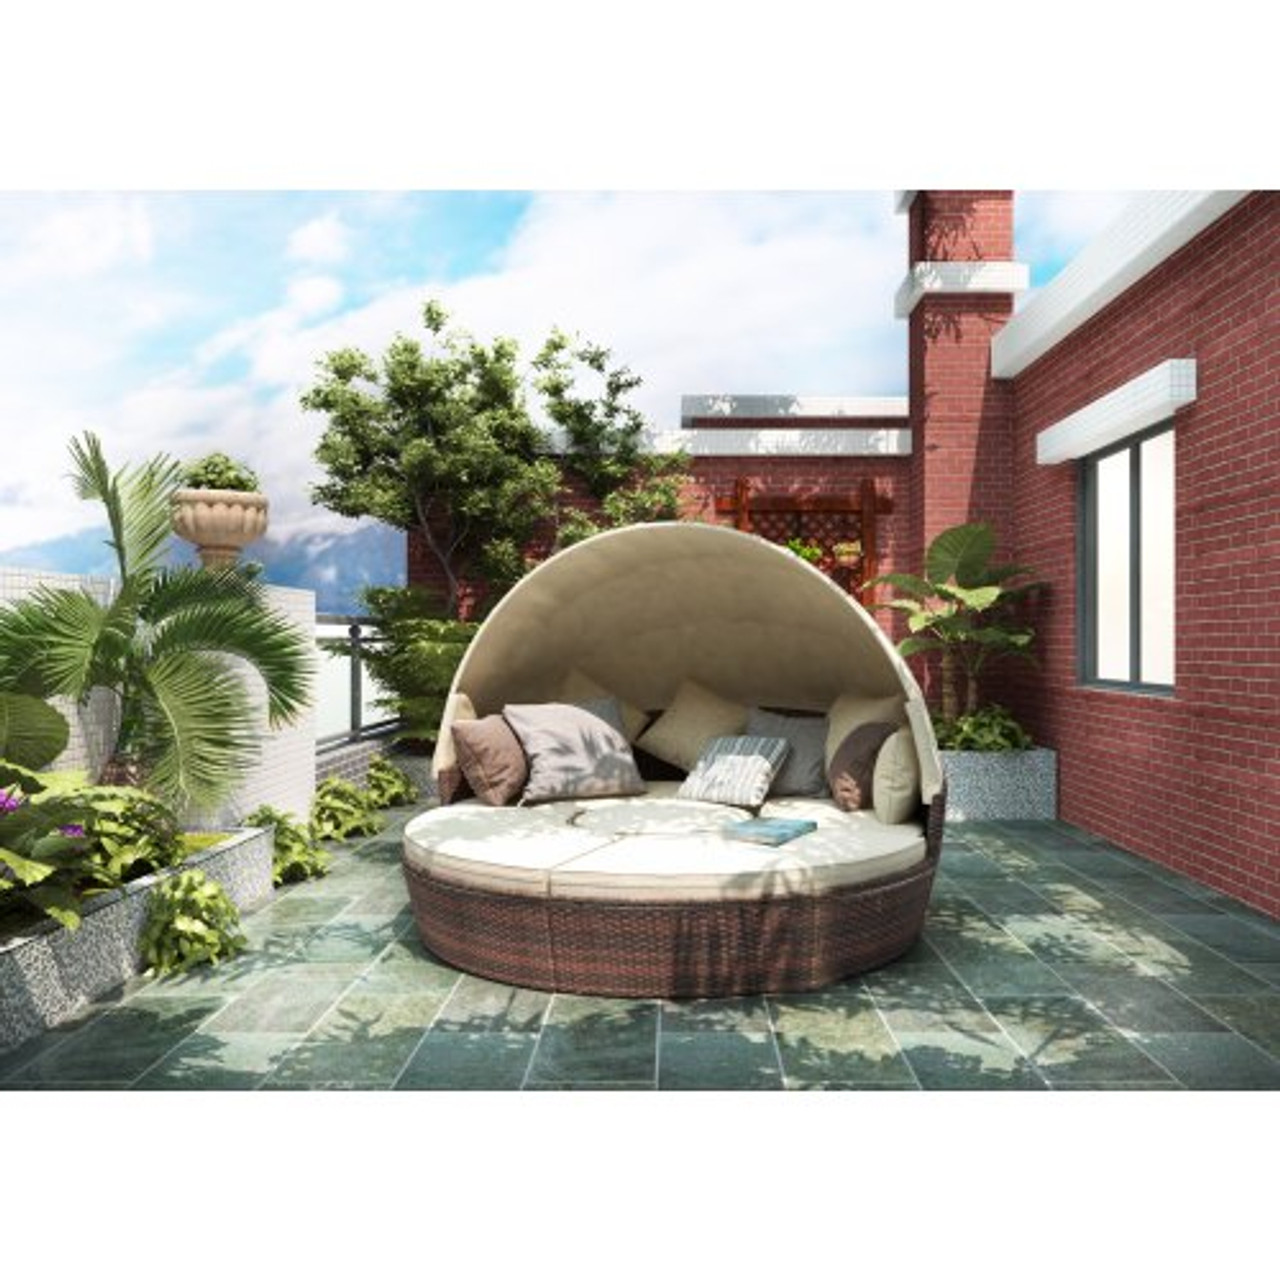 topmax patio furniture round outdoor sectional sofa set rattan daybed sunbed with retractable canopy separate seating and removable cushion beige